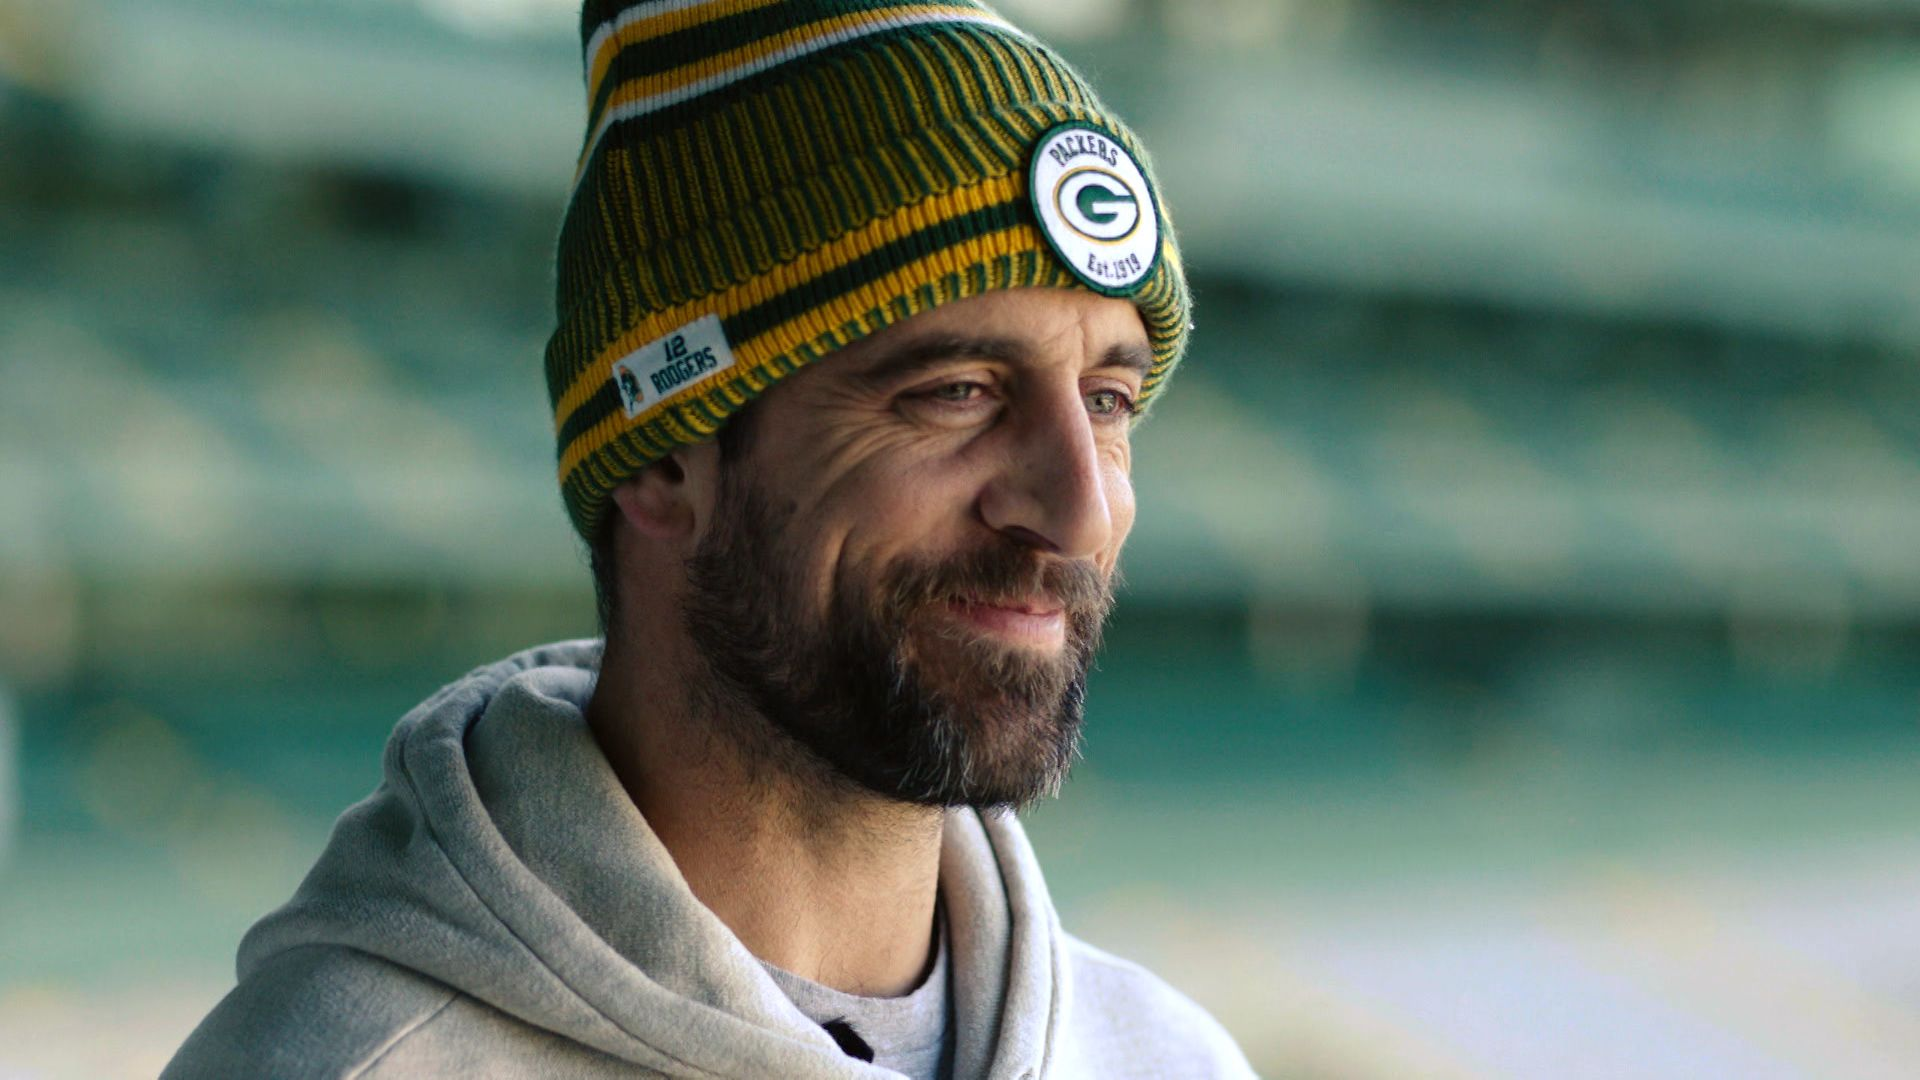 Aaron Rodgers Explains Importance Of Growing Up A 49ers Fan National Football League News Packers Quarterback Aaro National Football 49ers Fans Aaron Rodgers